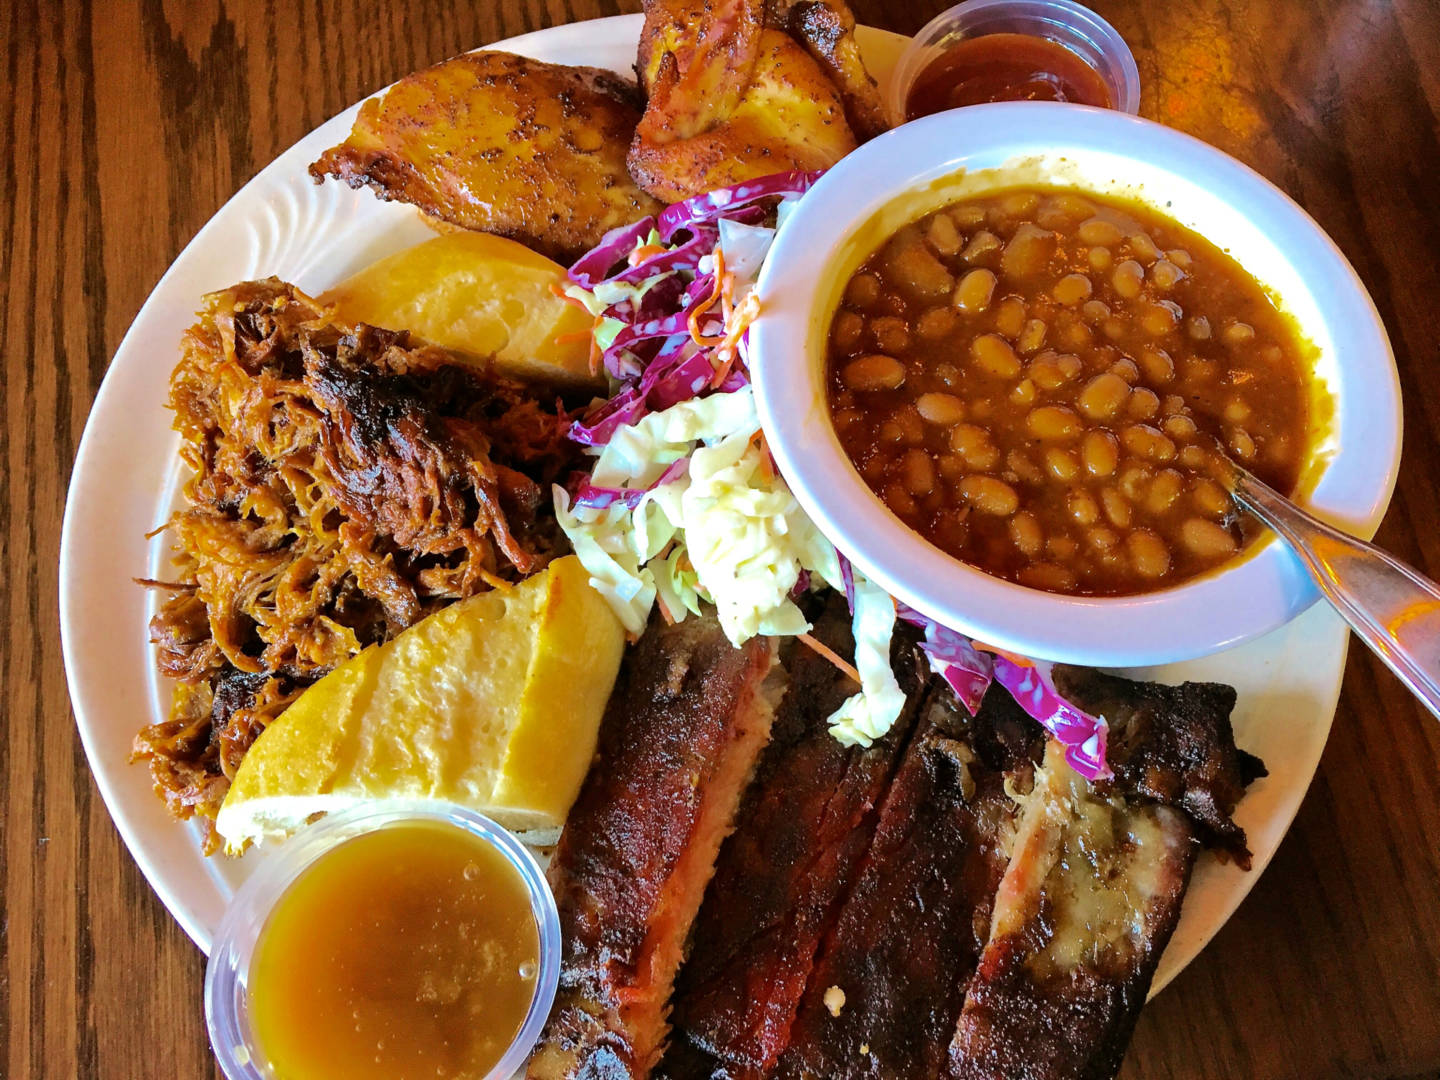 A combination plate with ribs, roasted chicken and pulled pork at The Cats. Jeff Cianci